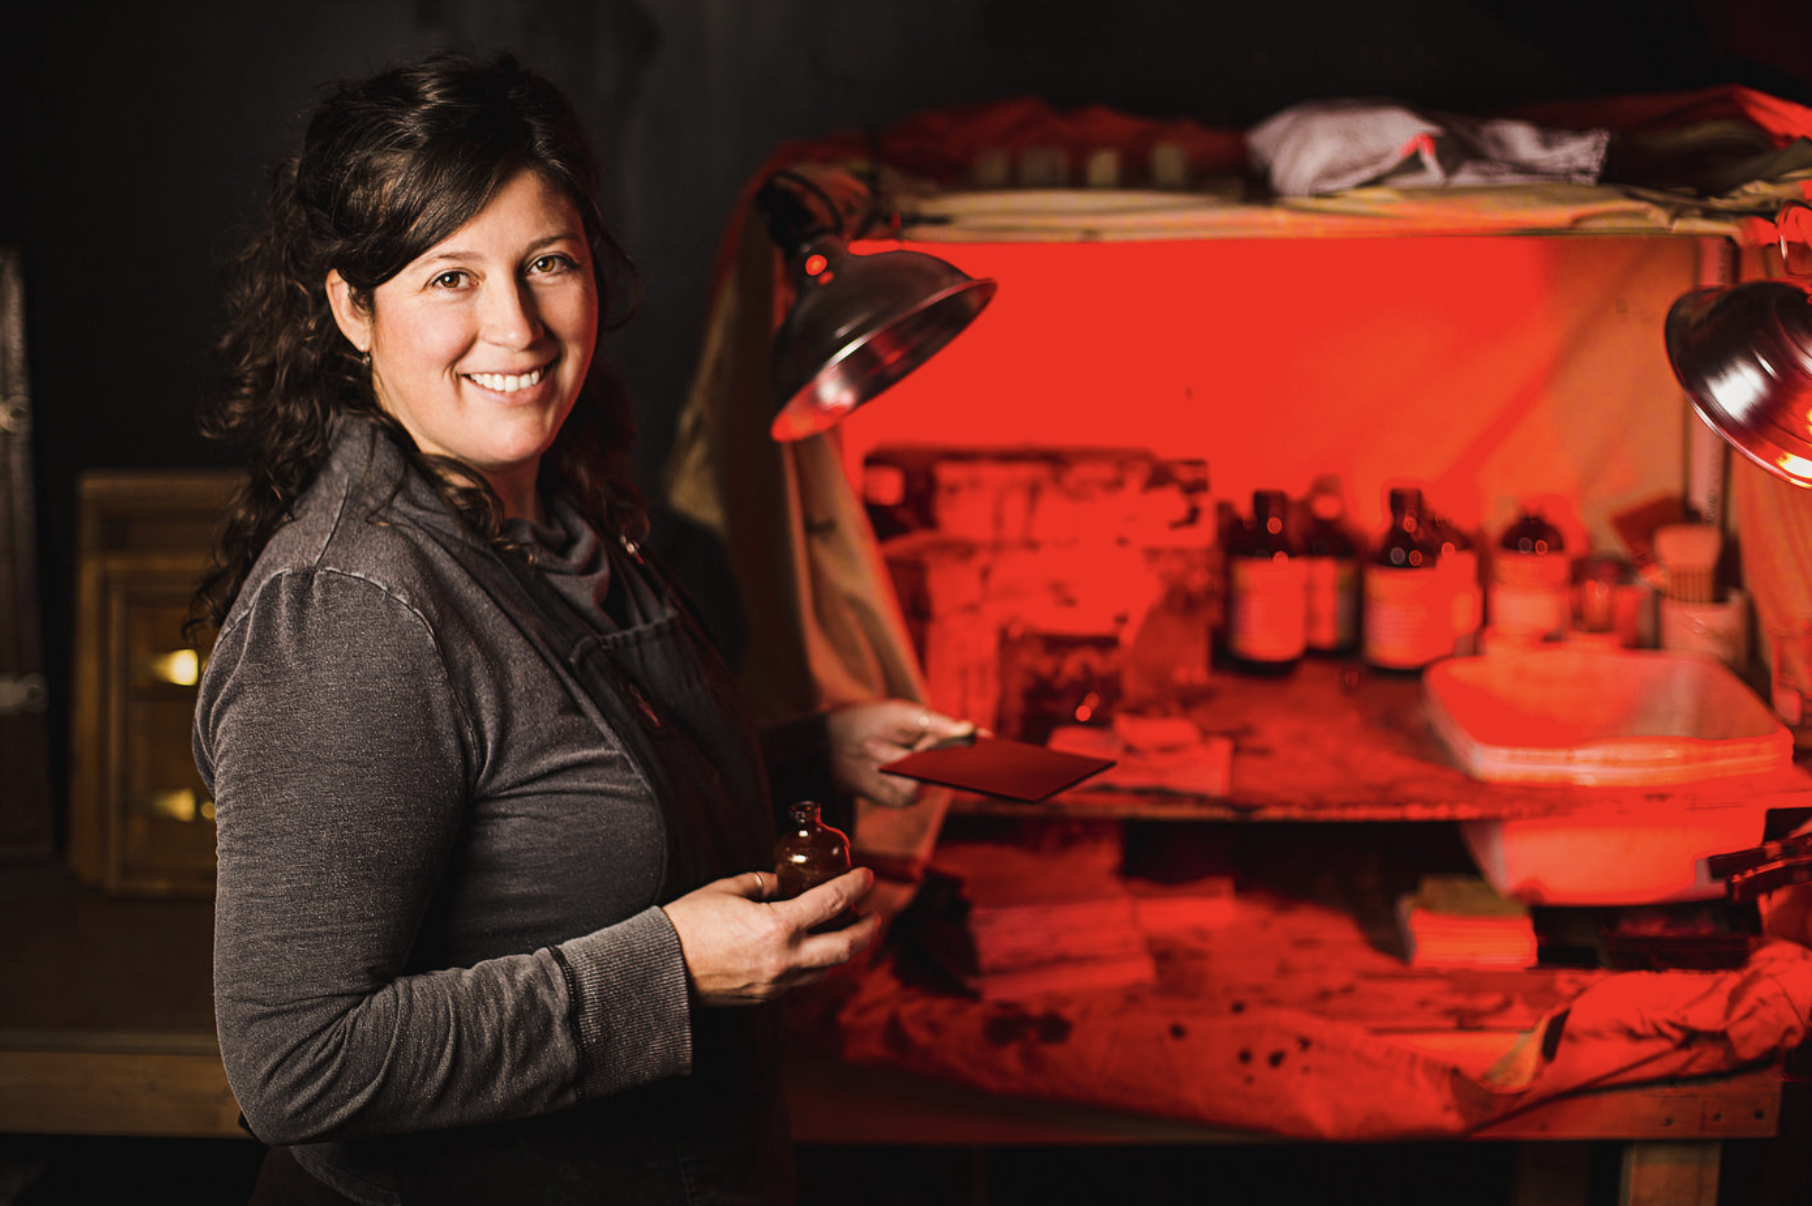 a female artist poses with her materials in front of a dark room set up to demonstrate one of the tips for great branding photos